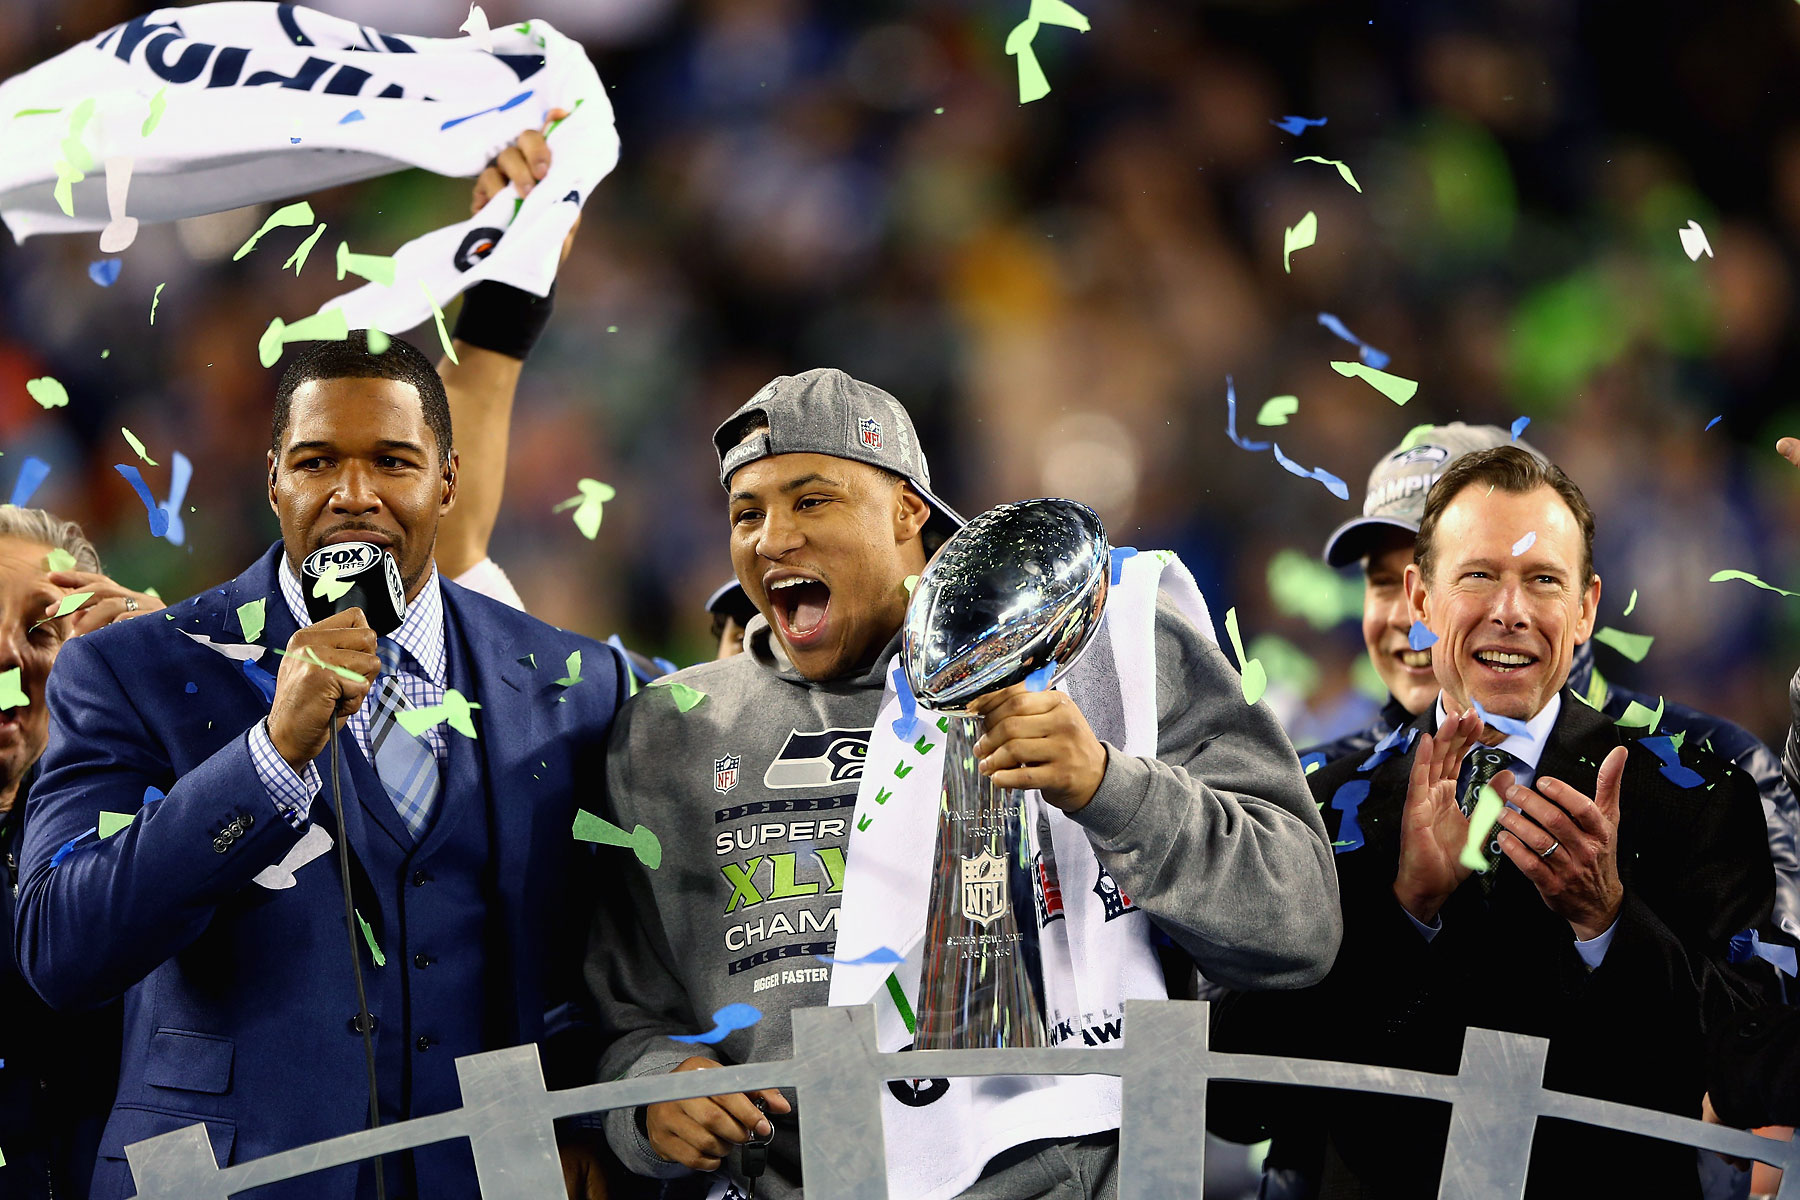 Outside linebacker and Super Bowl MVP Malcolm Smith of the Seattle Seahawks holds the Vince Lombardi Trophy after winning Super Bowl XLVIII.